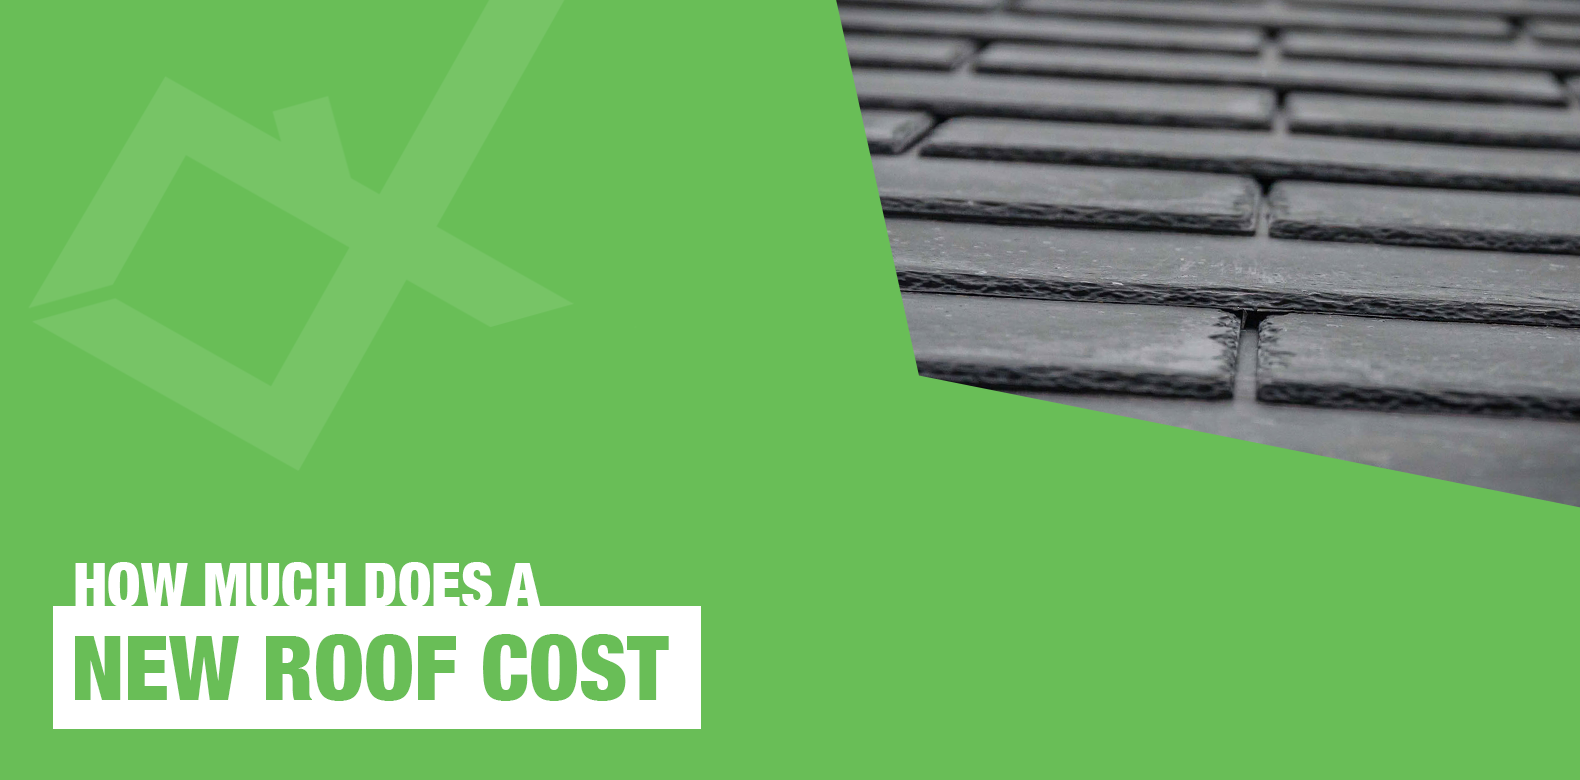 How Much Does a New Roof Cost?